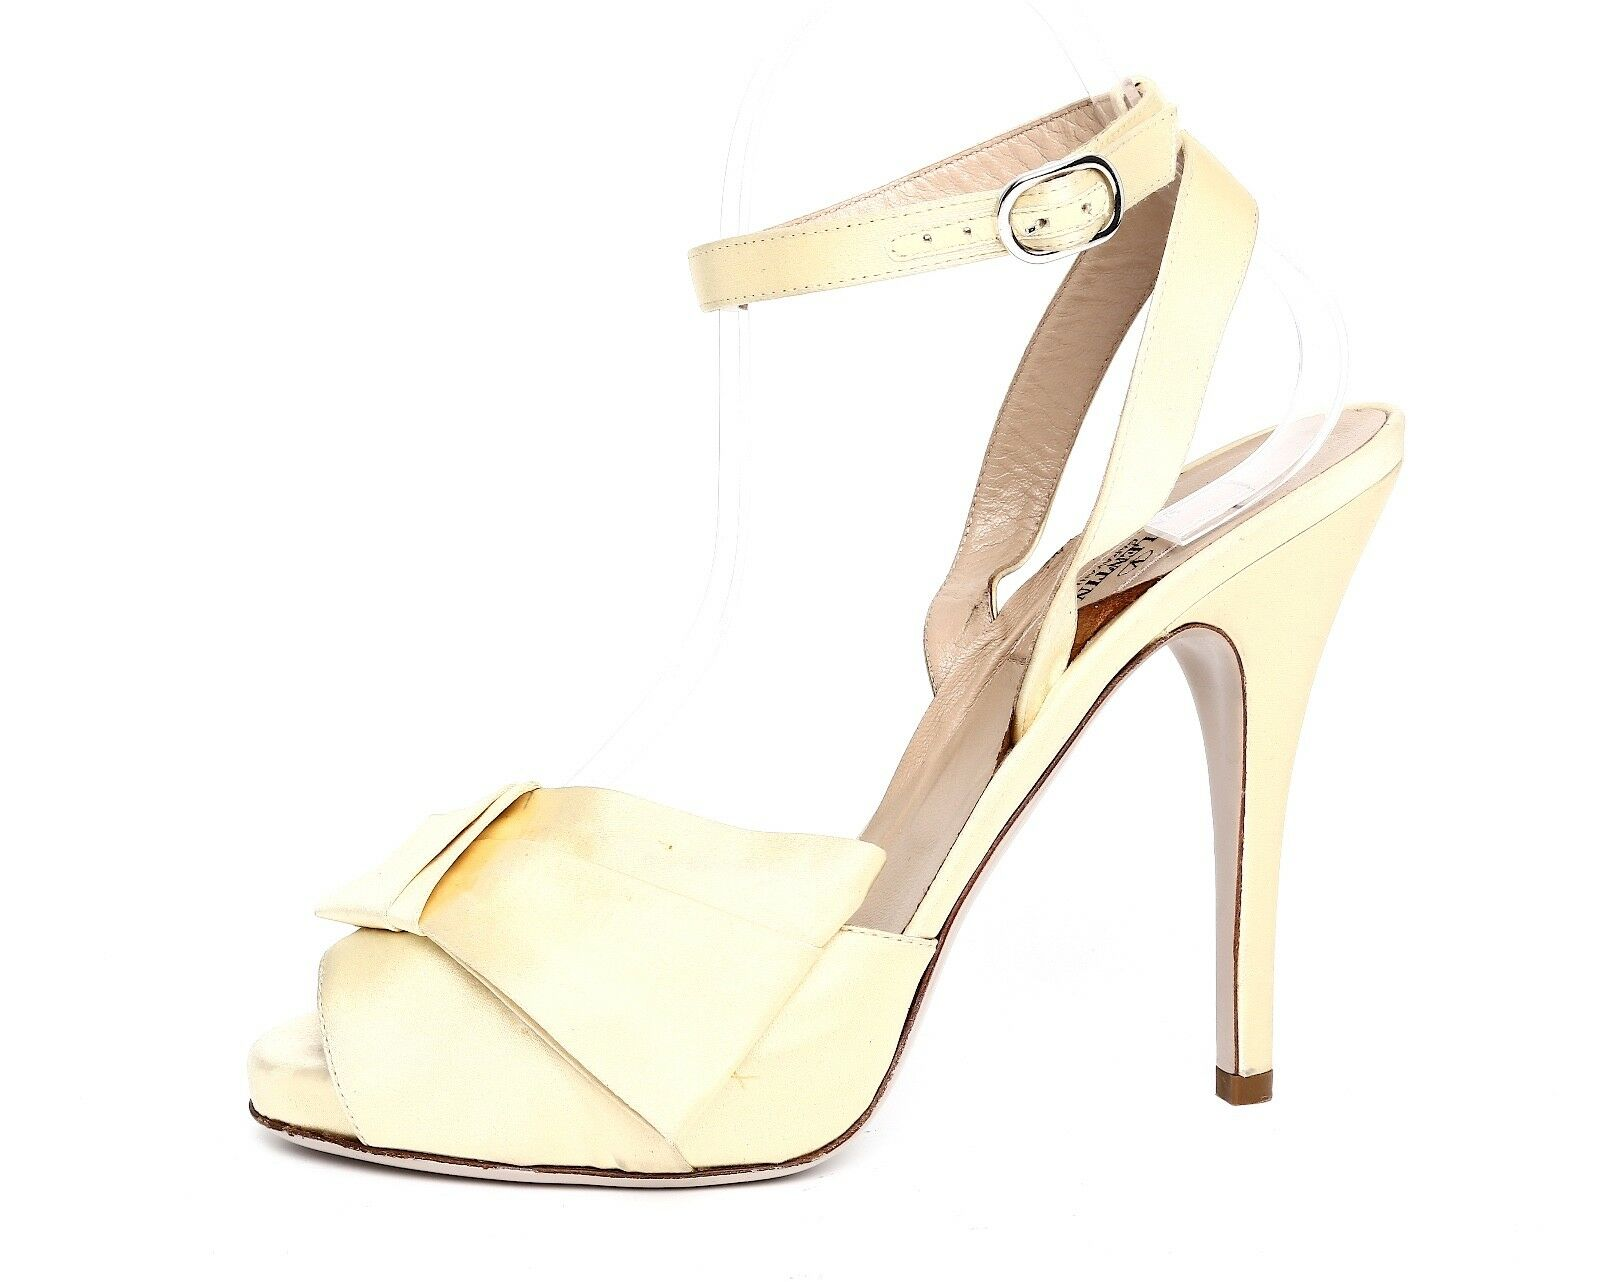 Valentino Garavani Women's High Heel Yellow Satin Sandals Sz 37 EUR 3076